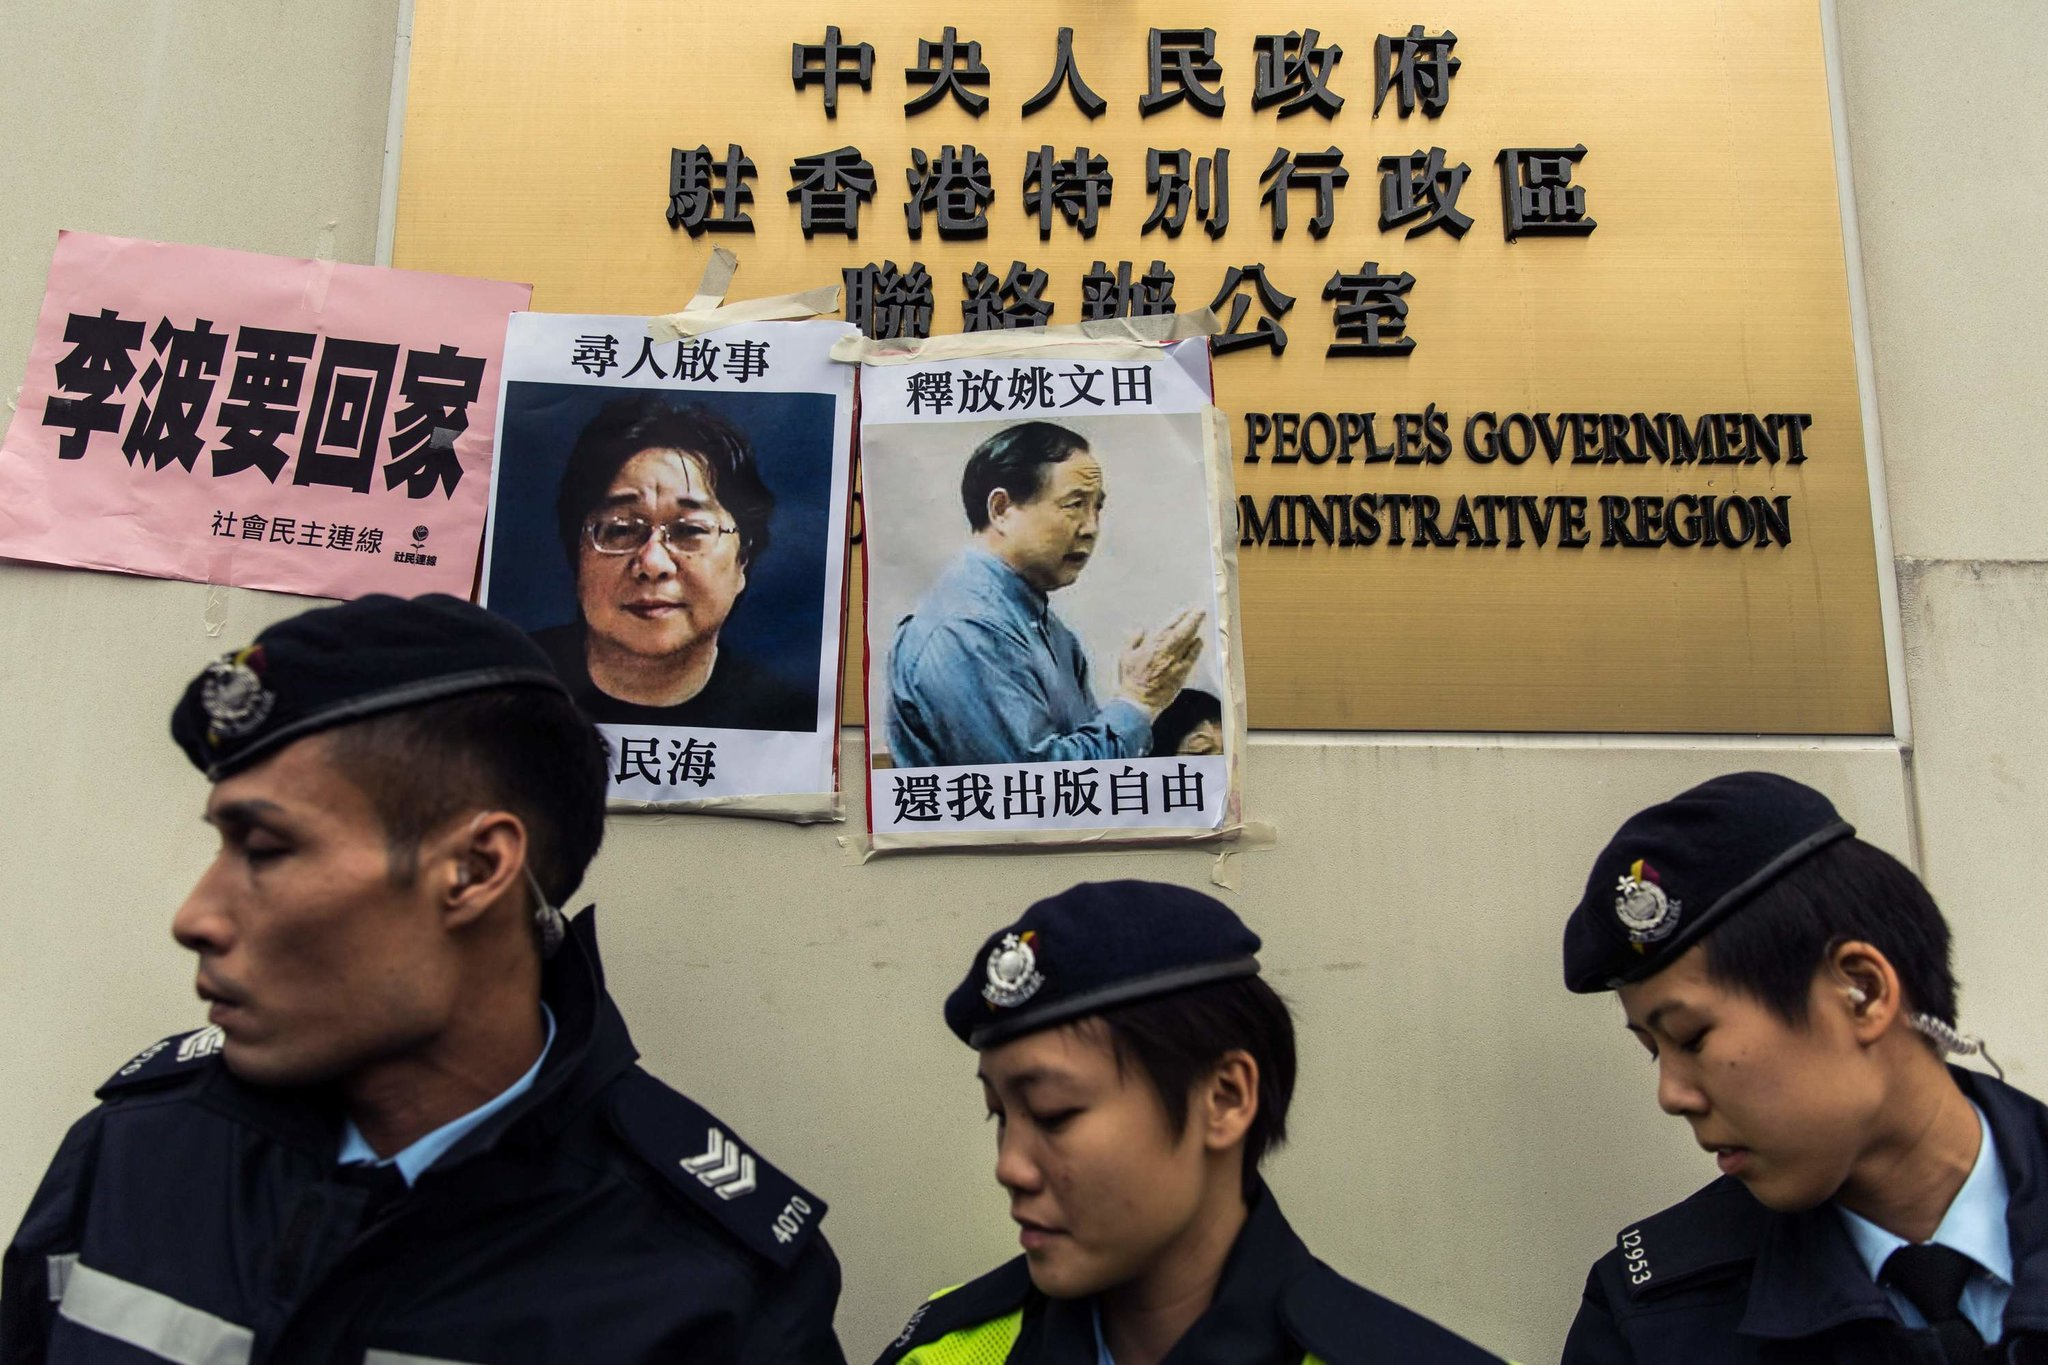 Sweden Demands Immediate Release of Gui Minhai